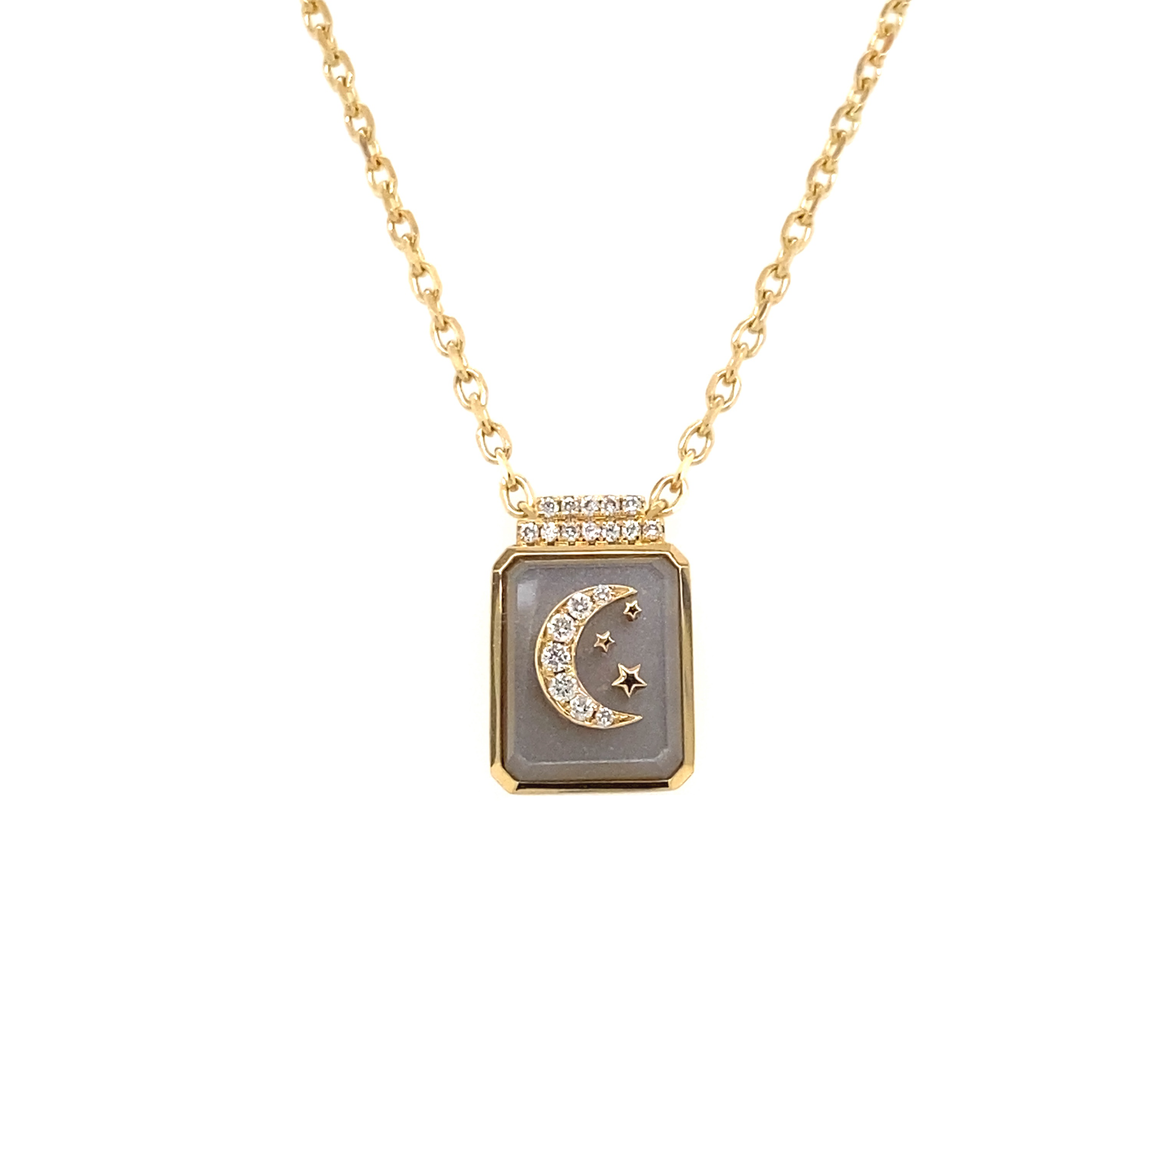 Crescent & Stars on Chain - Lesley Ann Jewels